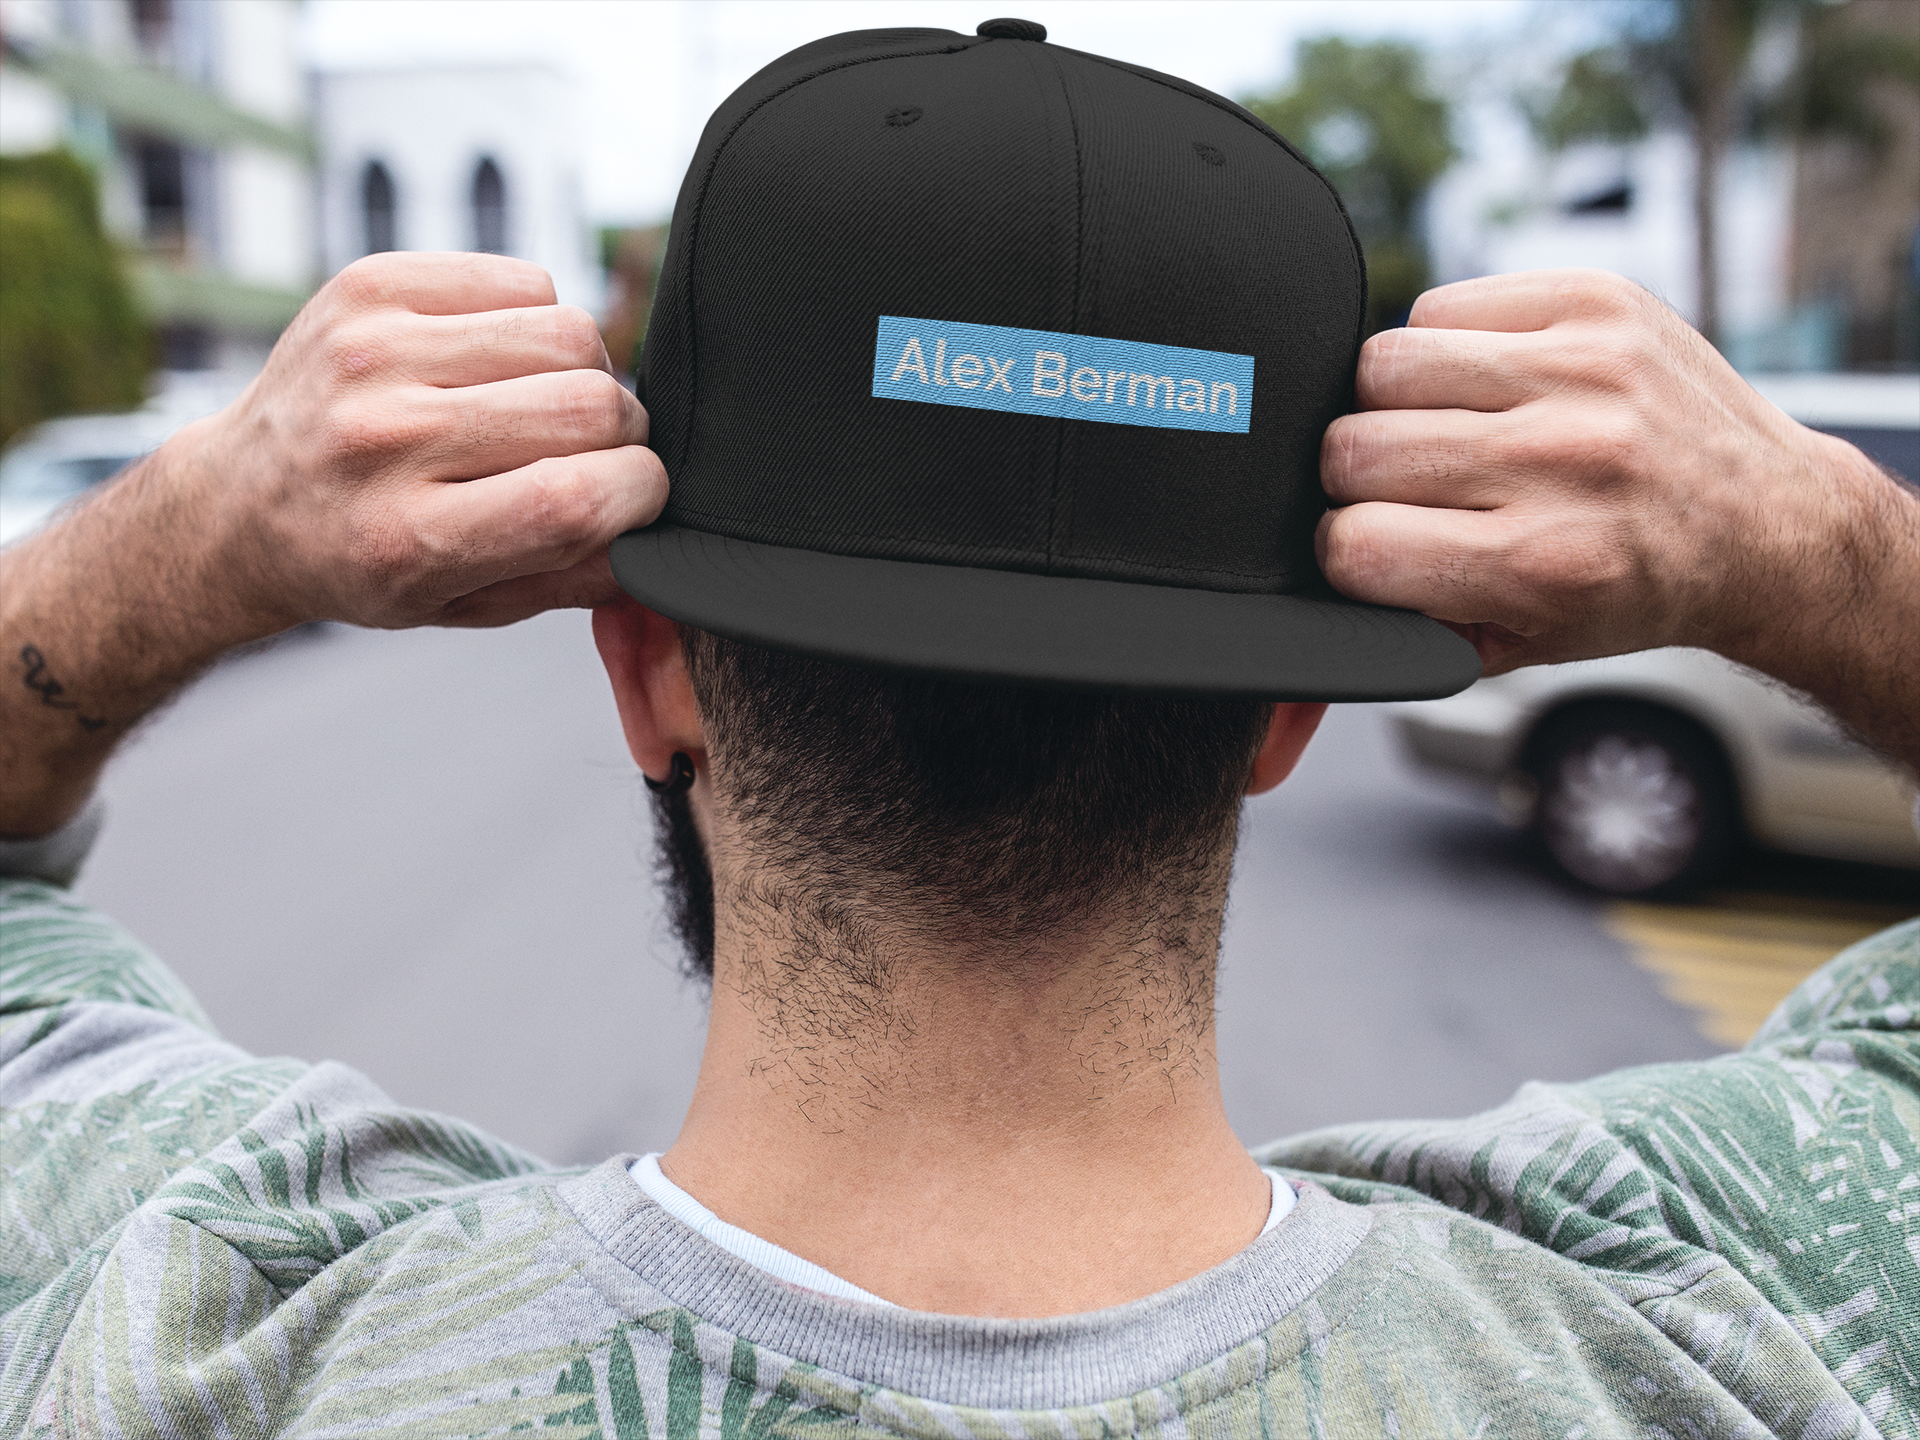 Alex Berman embroidered hat